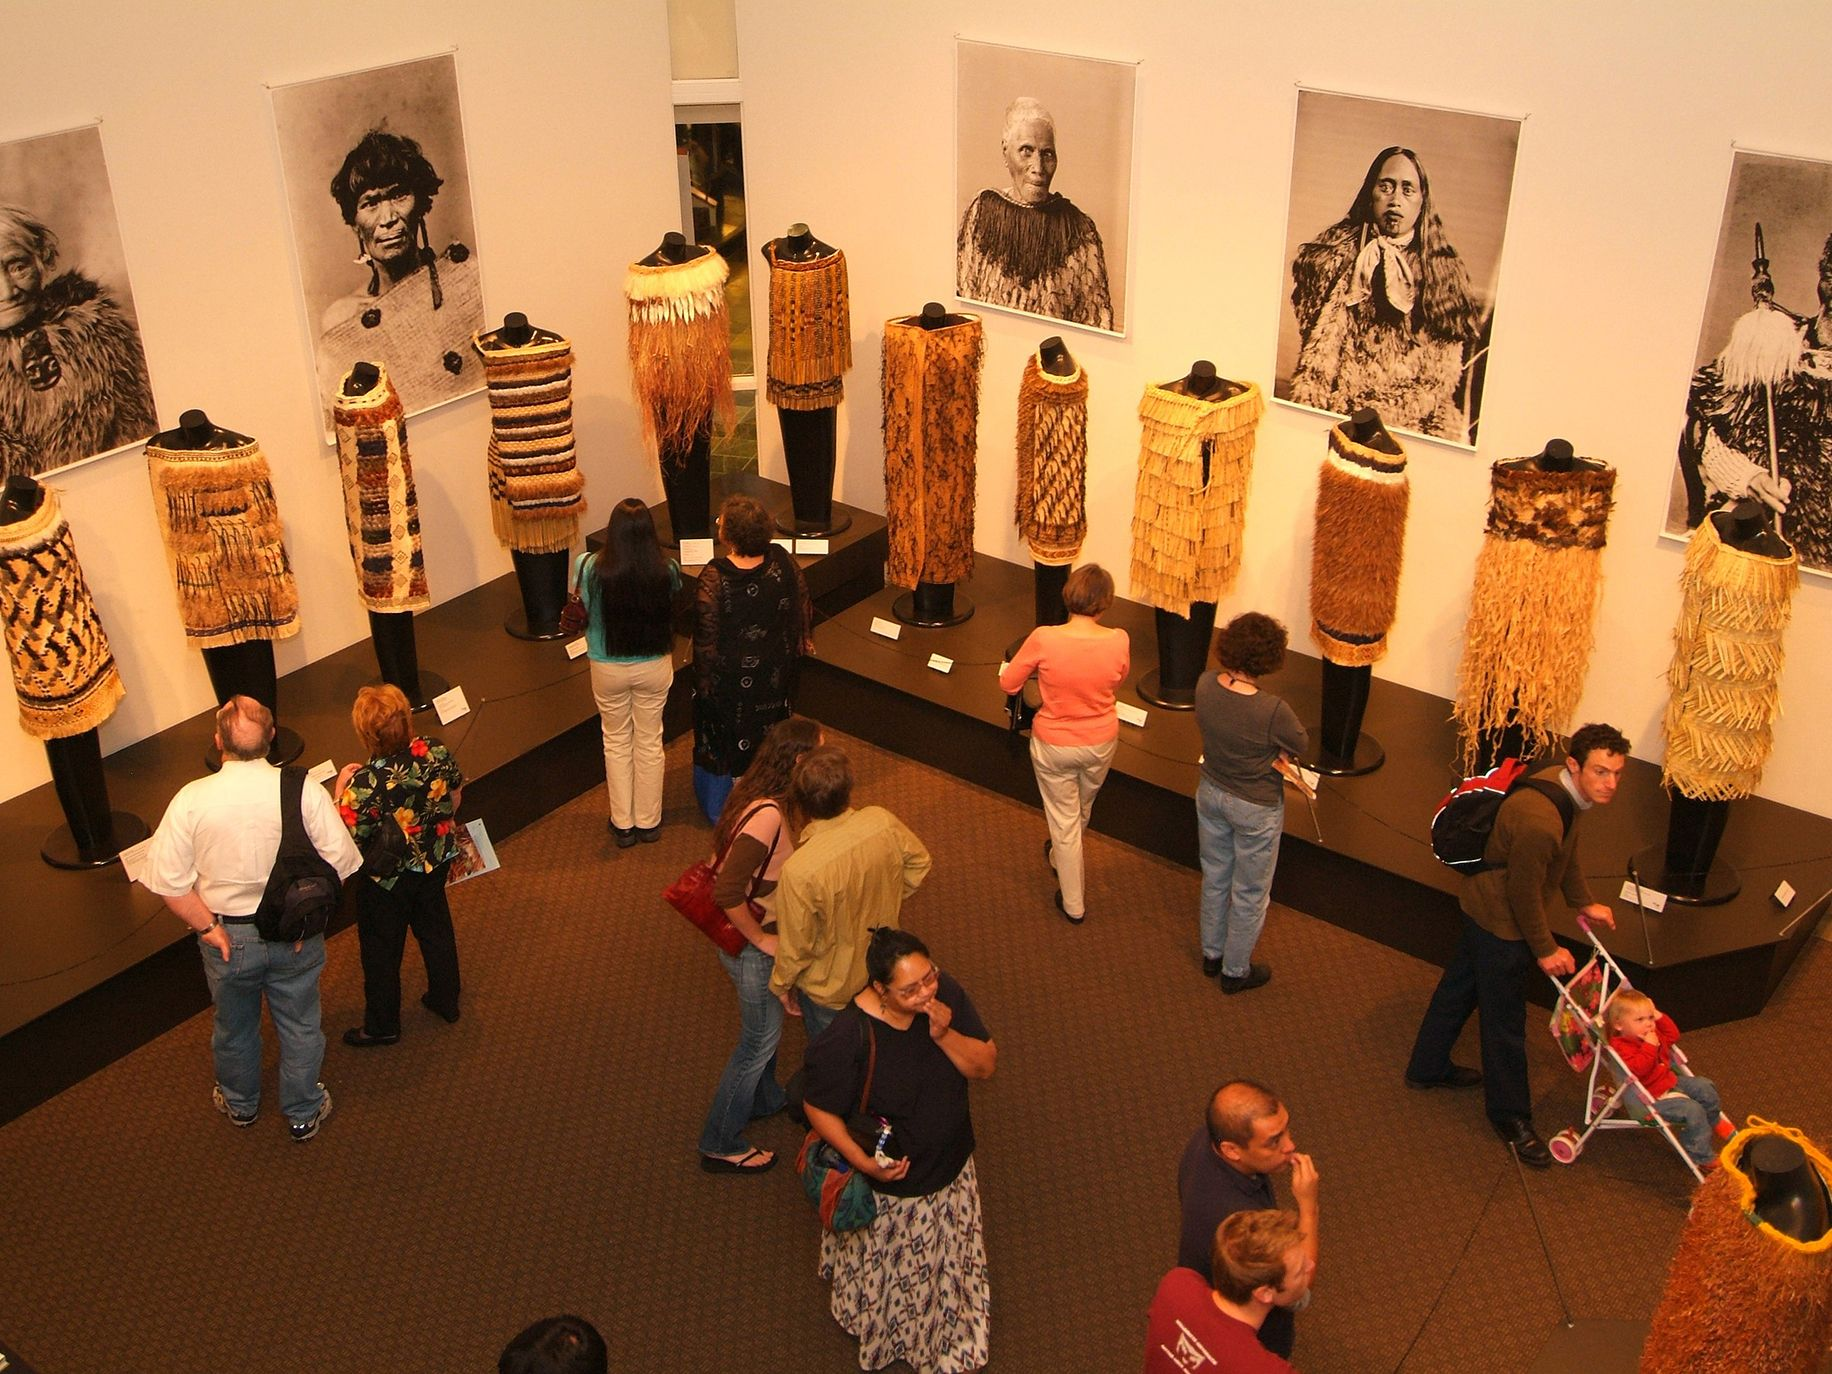 Chess fans should make their move to the Hallie Ford Museum of Art in Salem.